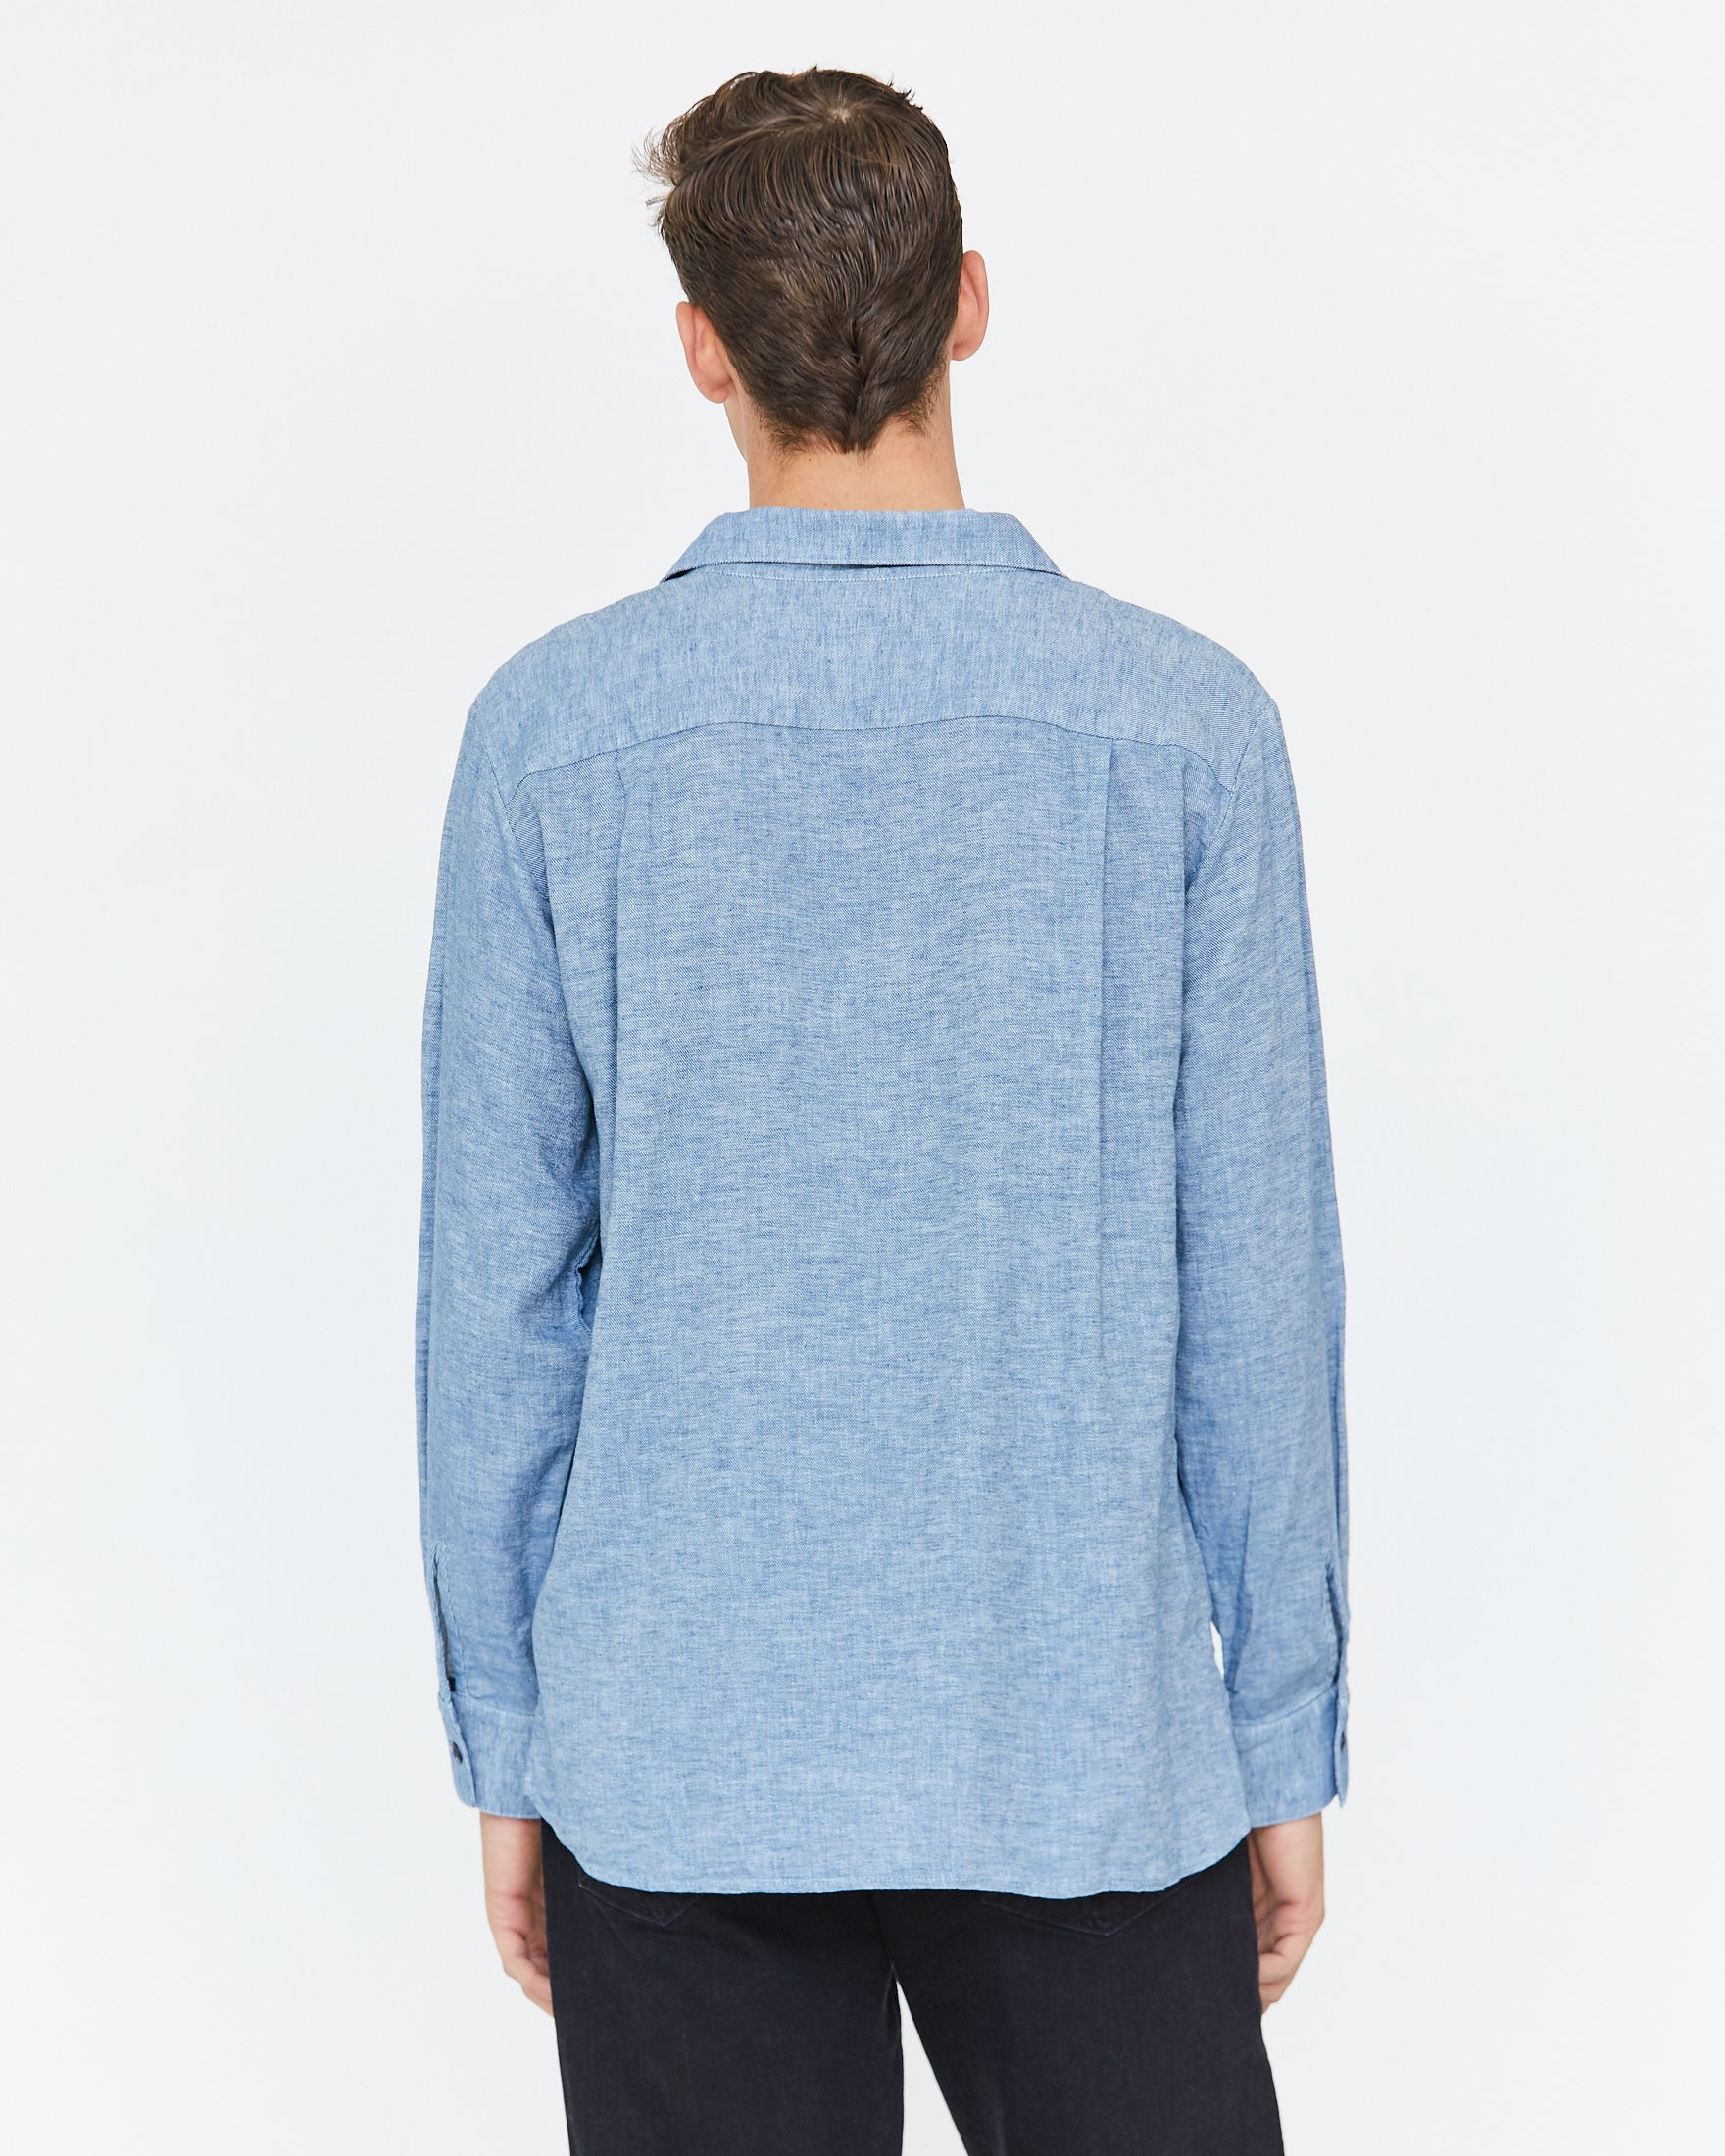 COOPER BUTTON DOWN - OCEAN BLUE